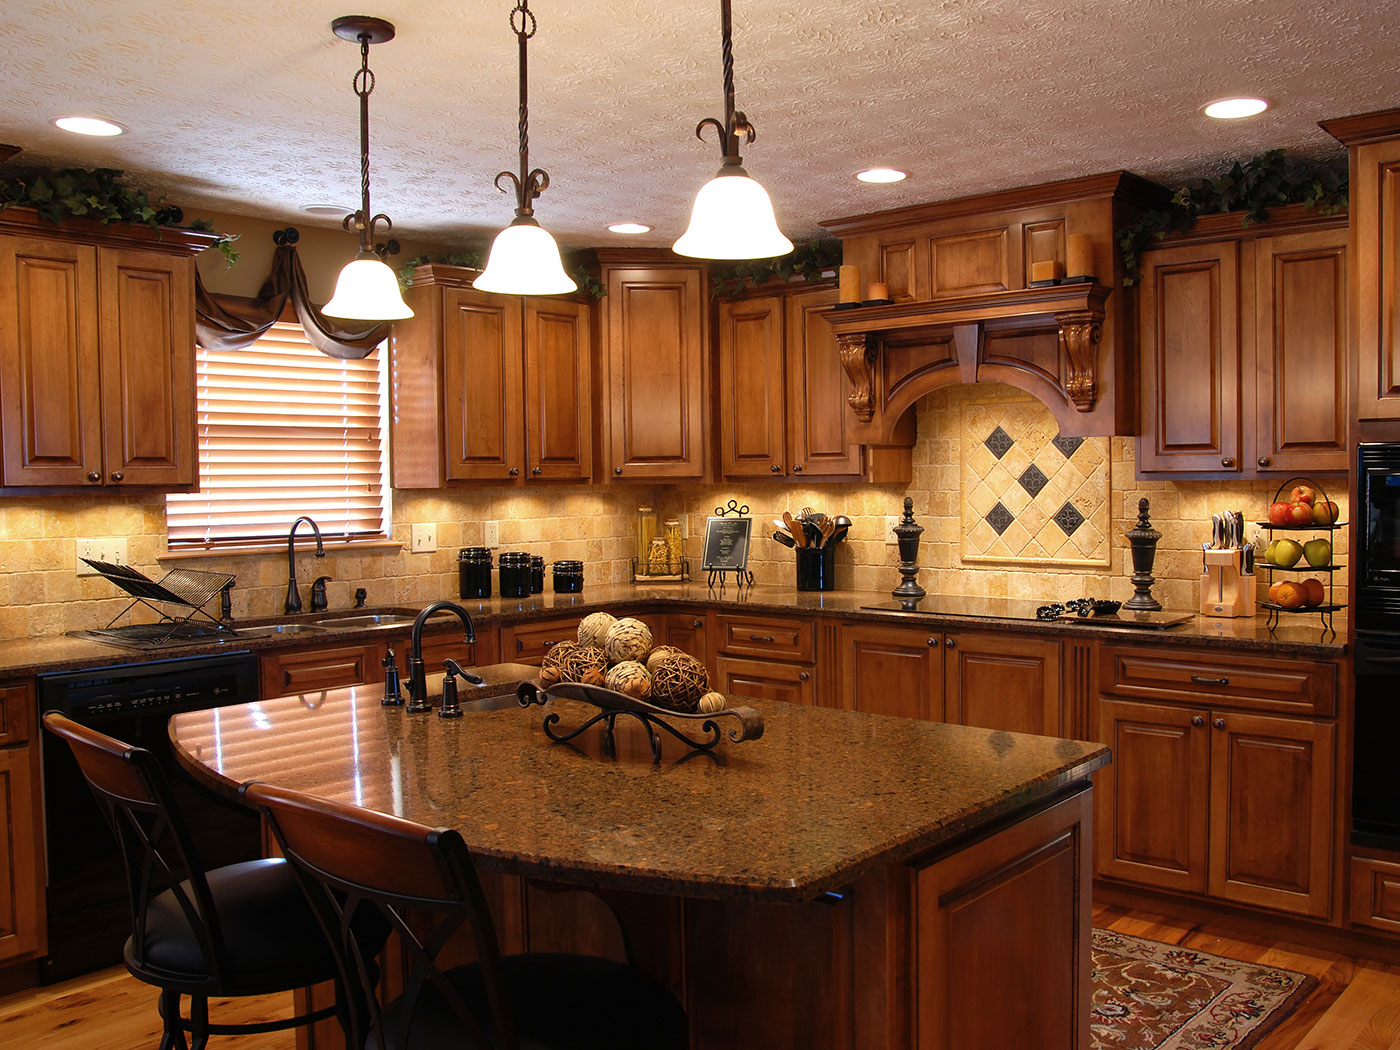 Kitchen Renovation Archives - Craftworks Custom Cabinetry - Rochester, NY